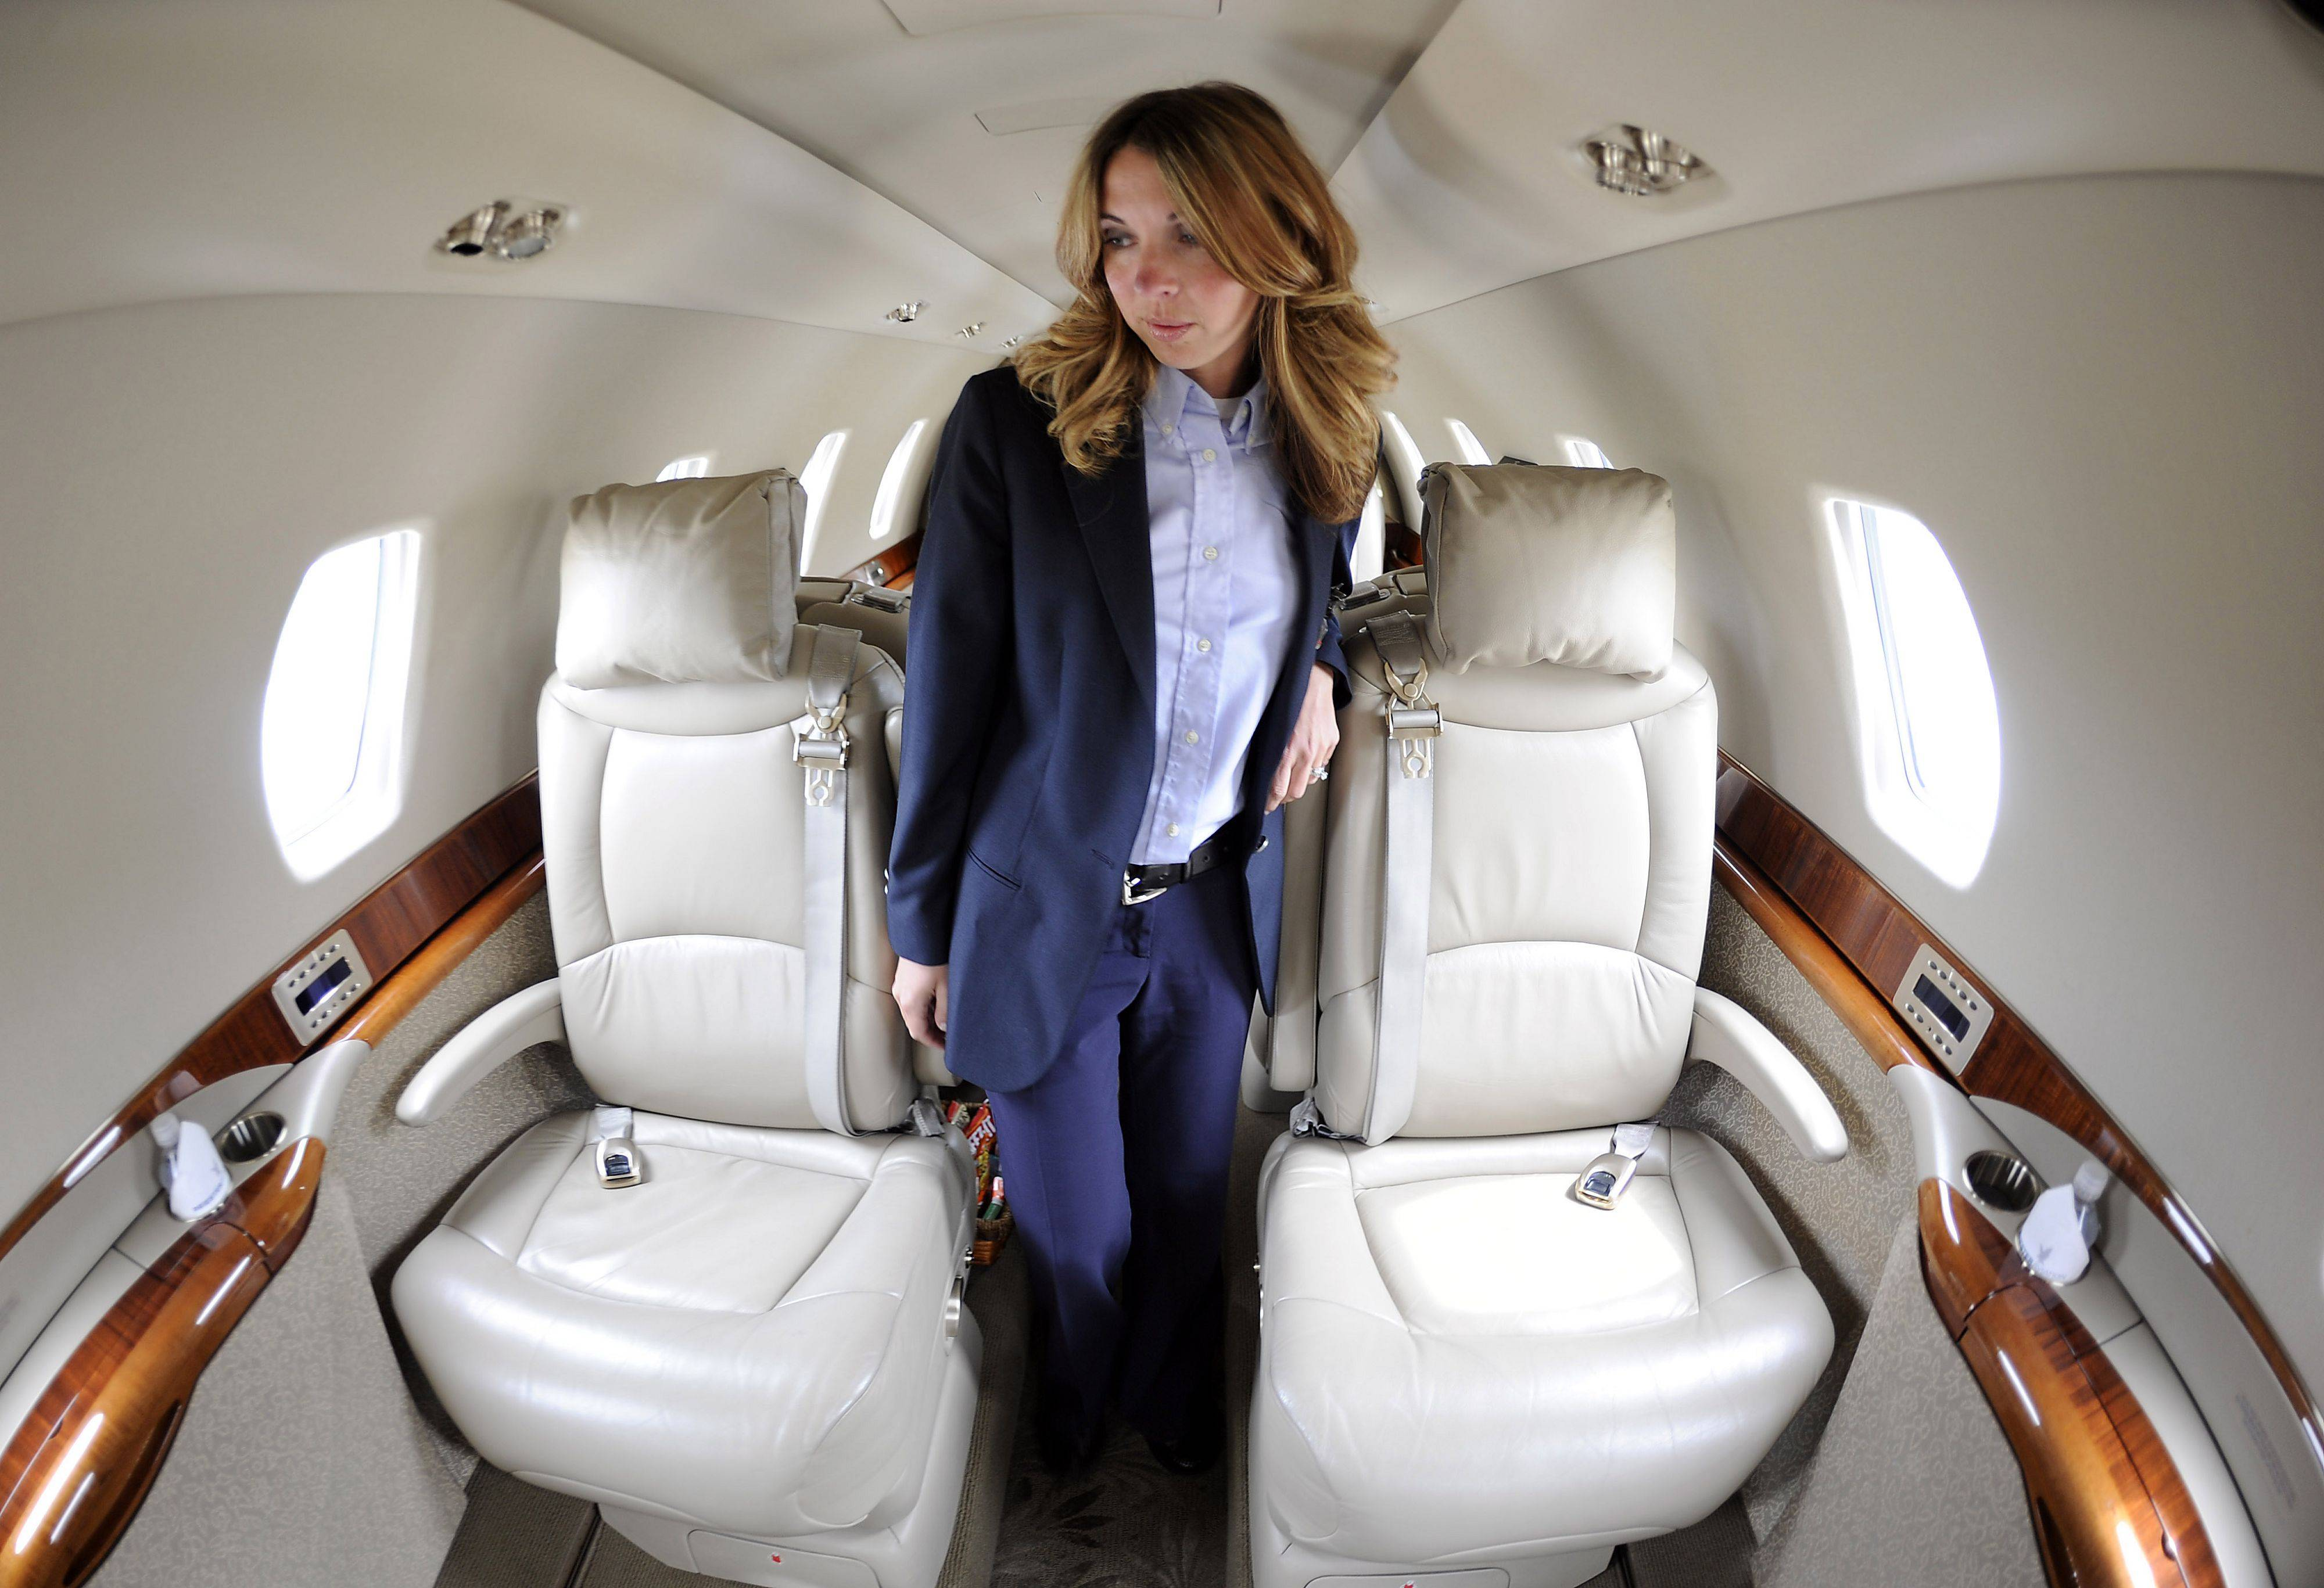 Pilot Amanda Sorenson of Priester Aviation gets ready for takeoff by checking all the controls in her Citation Sovereign aircraft with her fellow pilot Fred Bartlett of Burlington, WI., before she leaves Chicago Executive Airport.